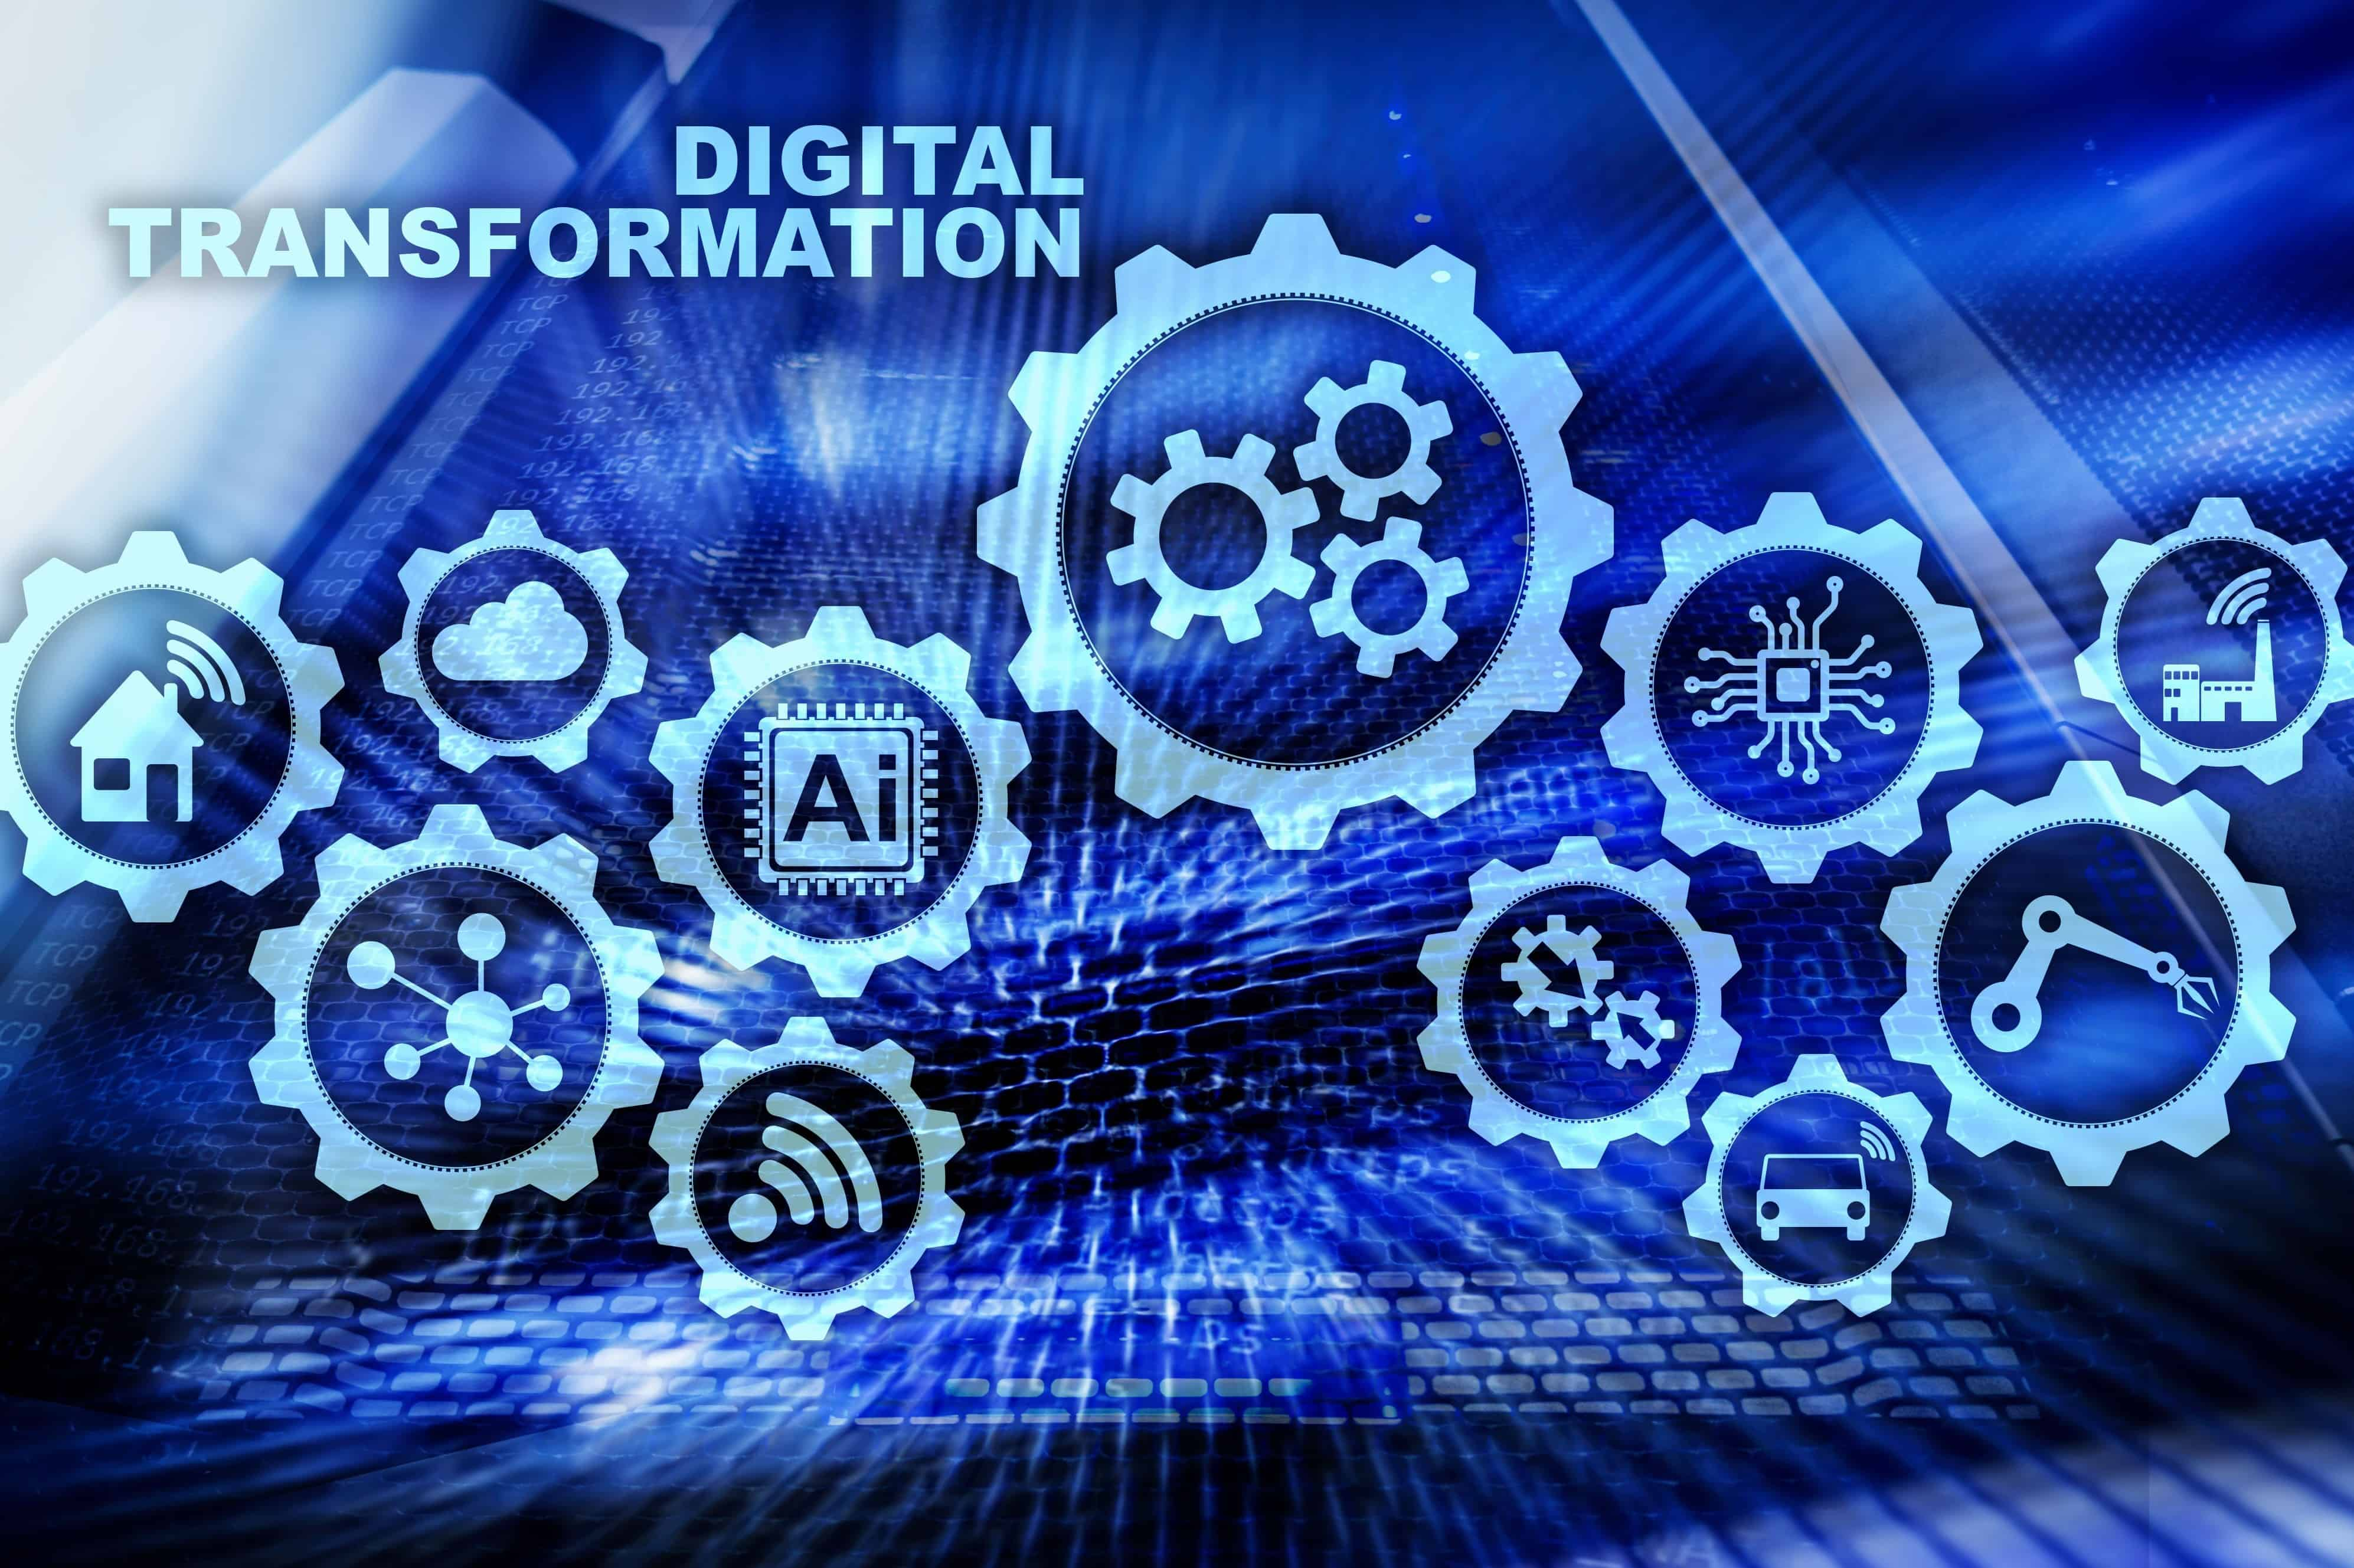 Digital Transformation Concept of digitalization of technology business processes. Datacenter background